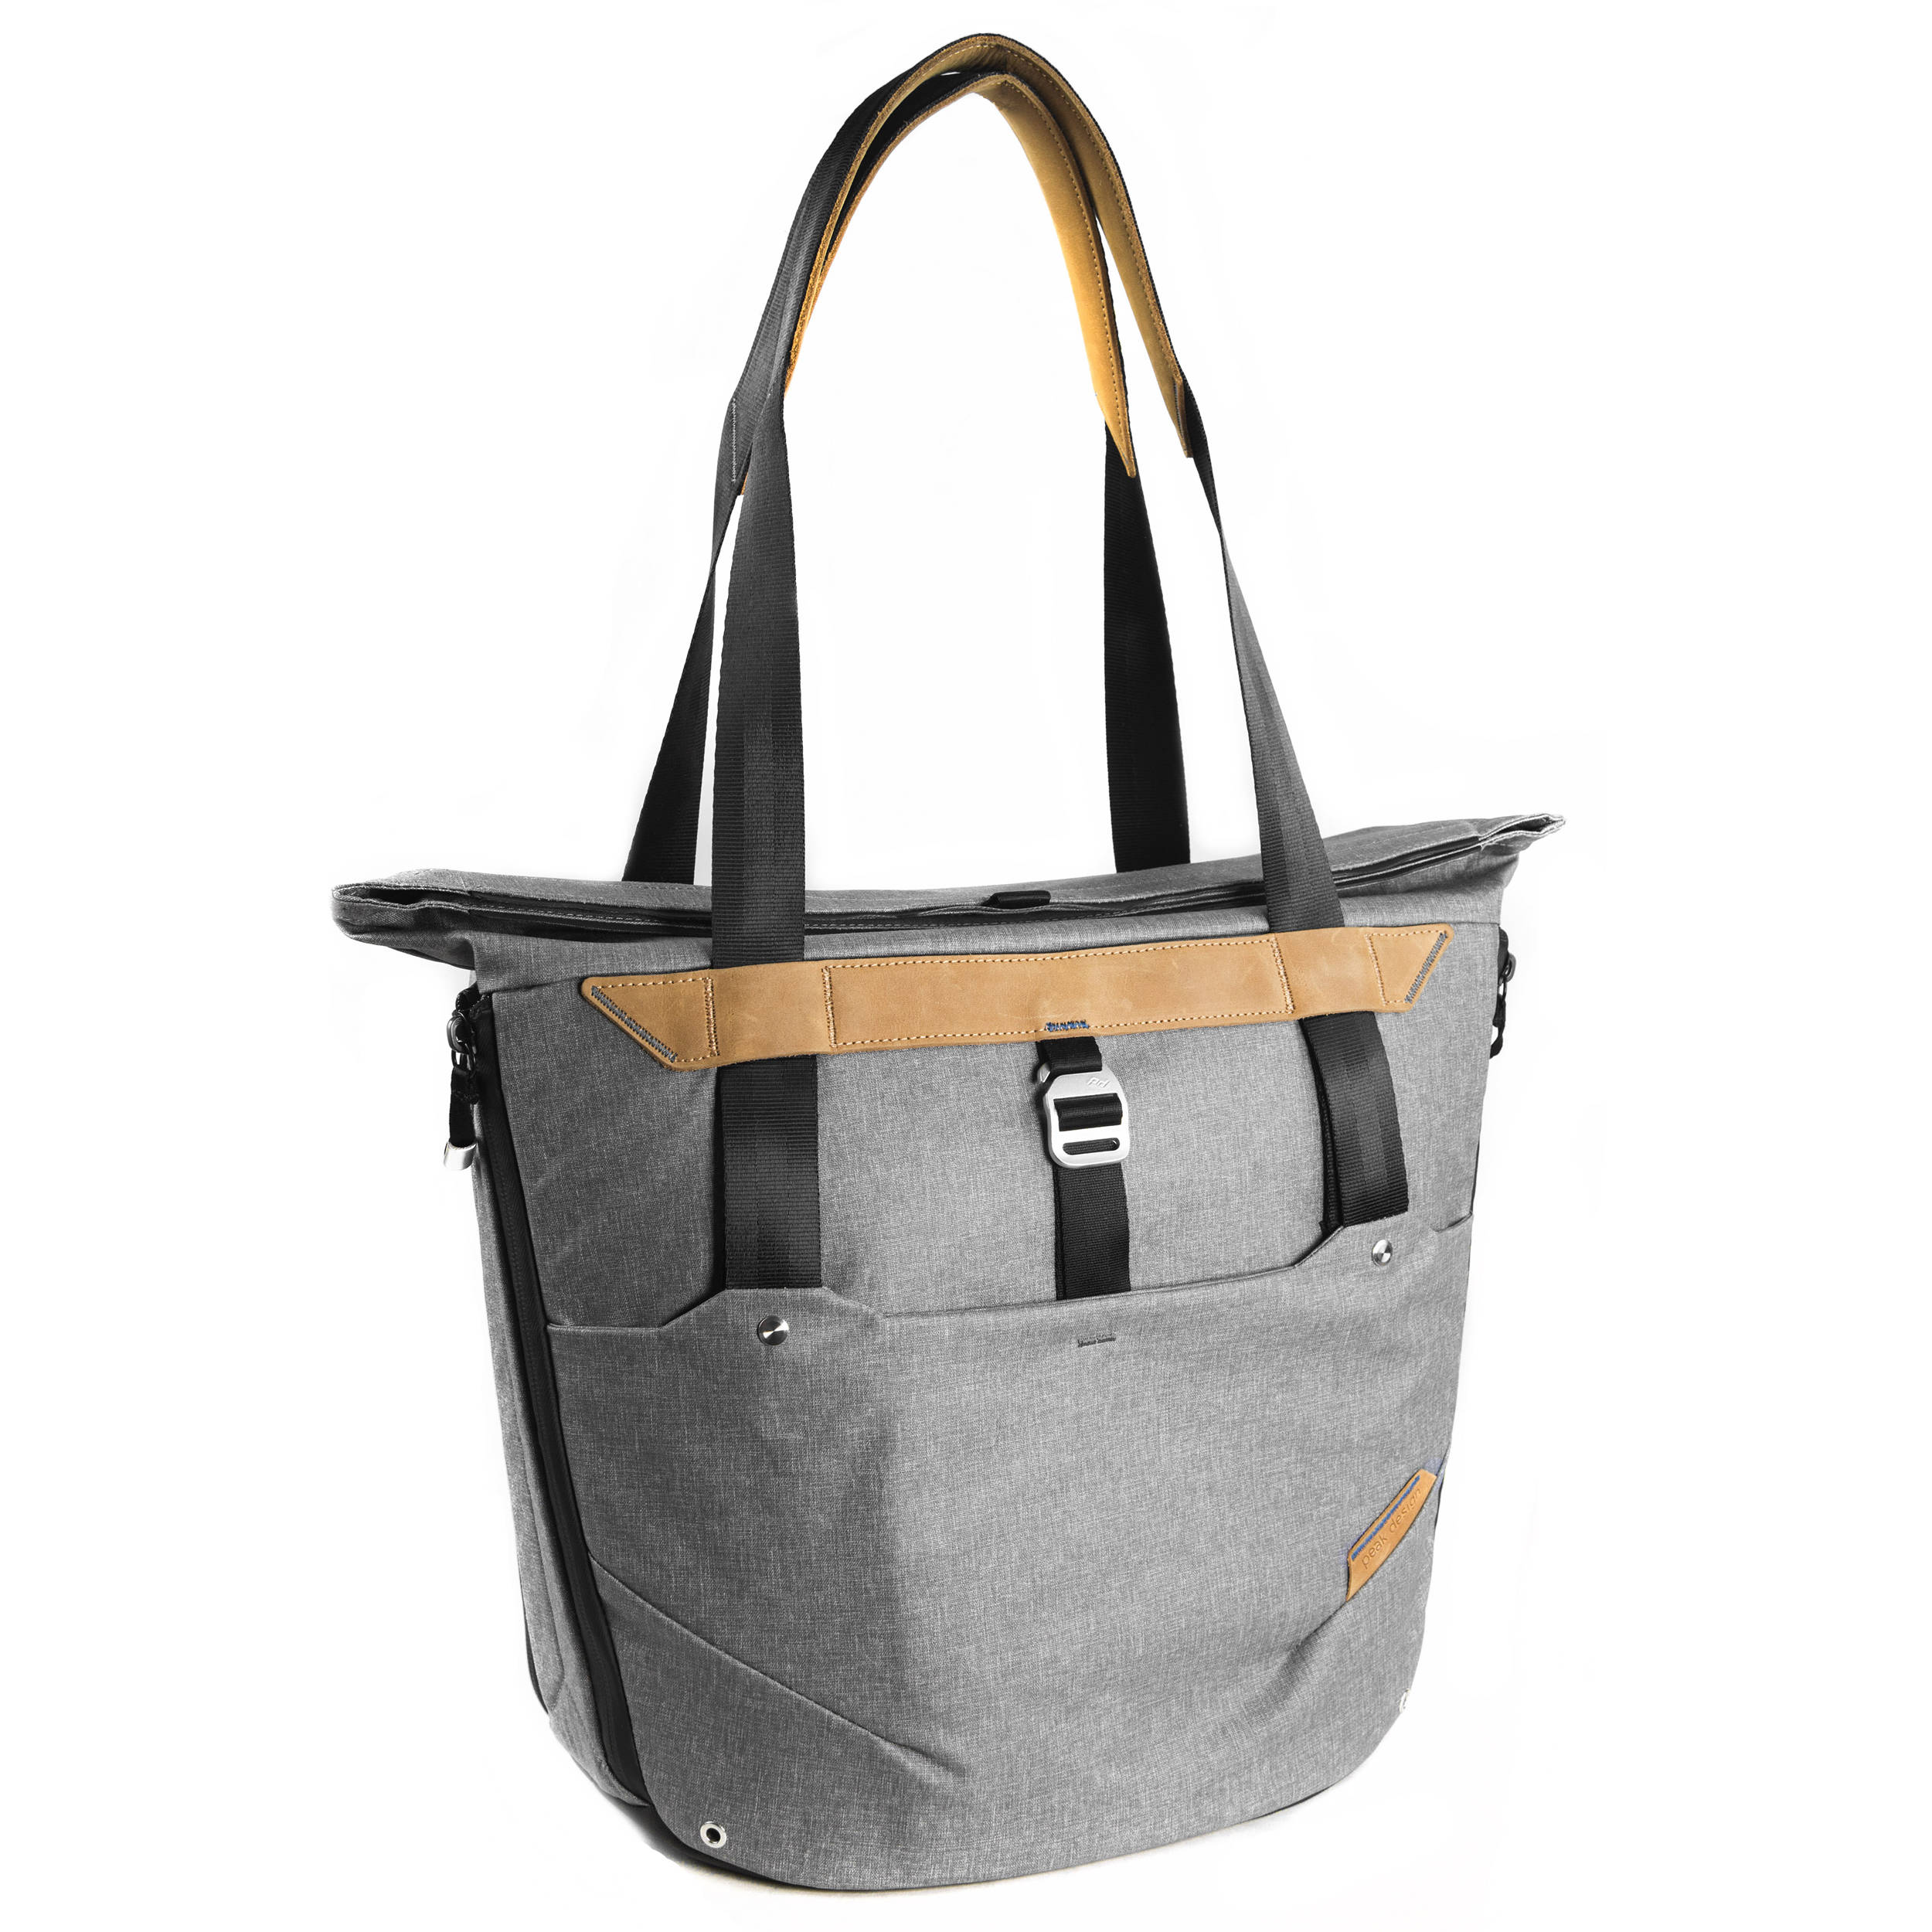 Peak Design Everyday Tote Bag Ash